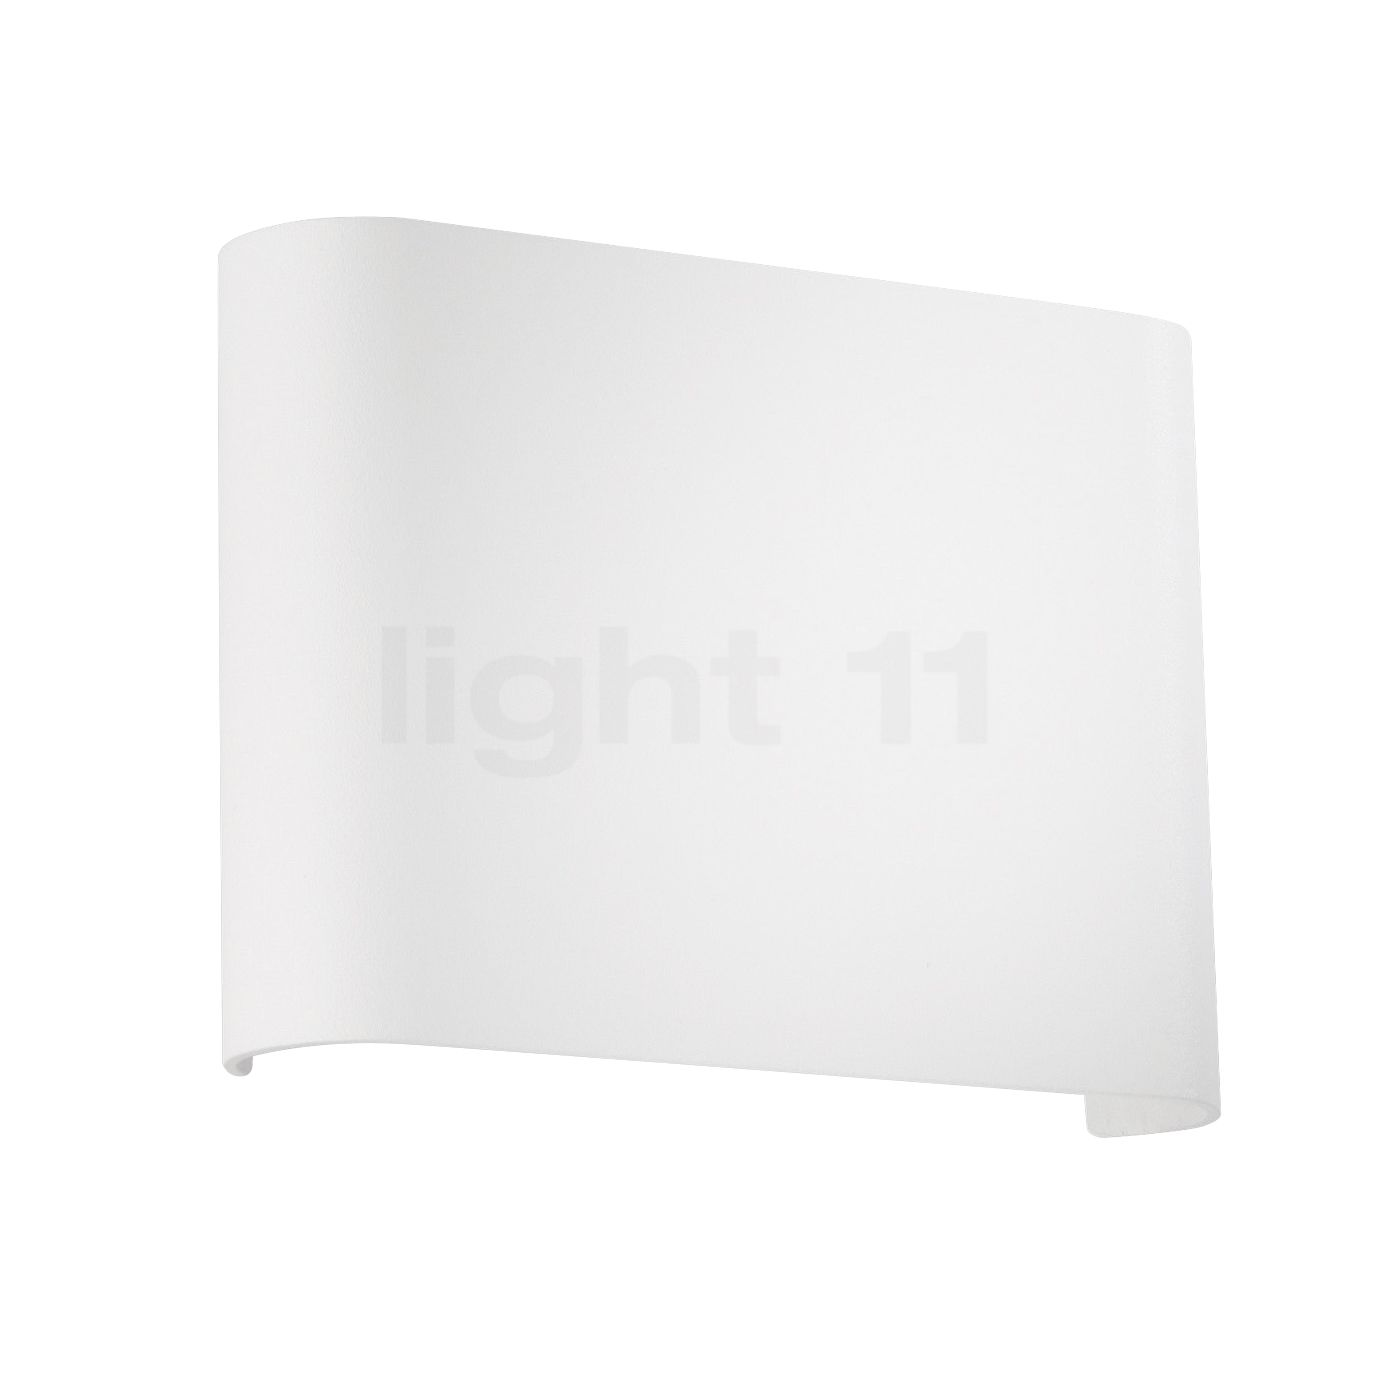 Applique Murale Exterieur Led Philips Philips Ledino Galax Applique Murale Led Applique